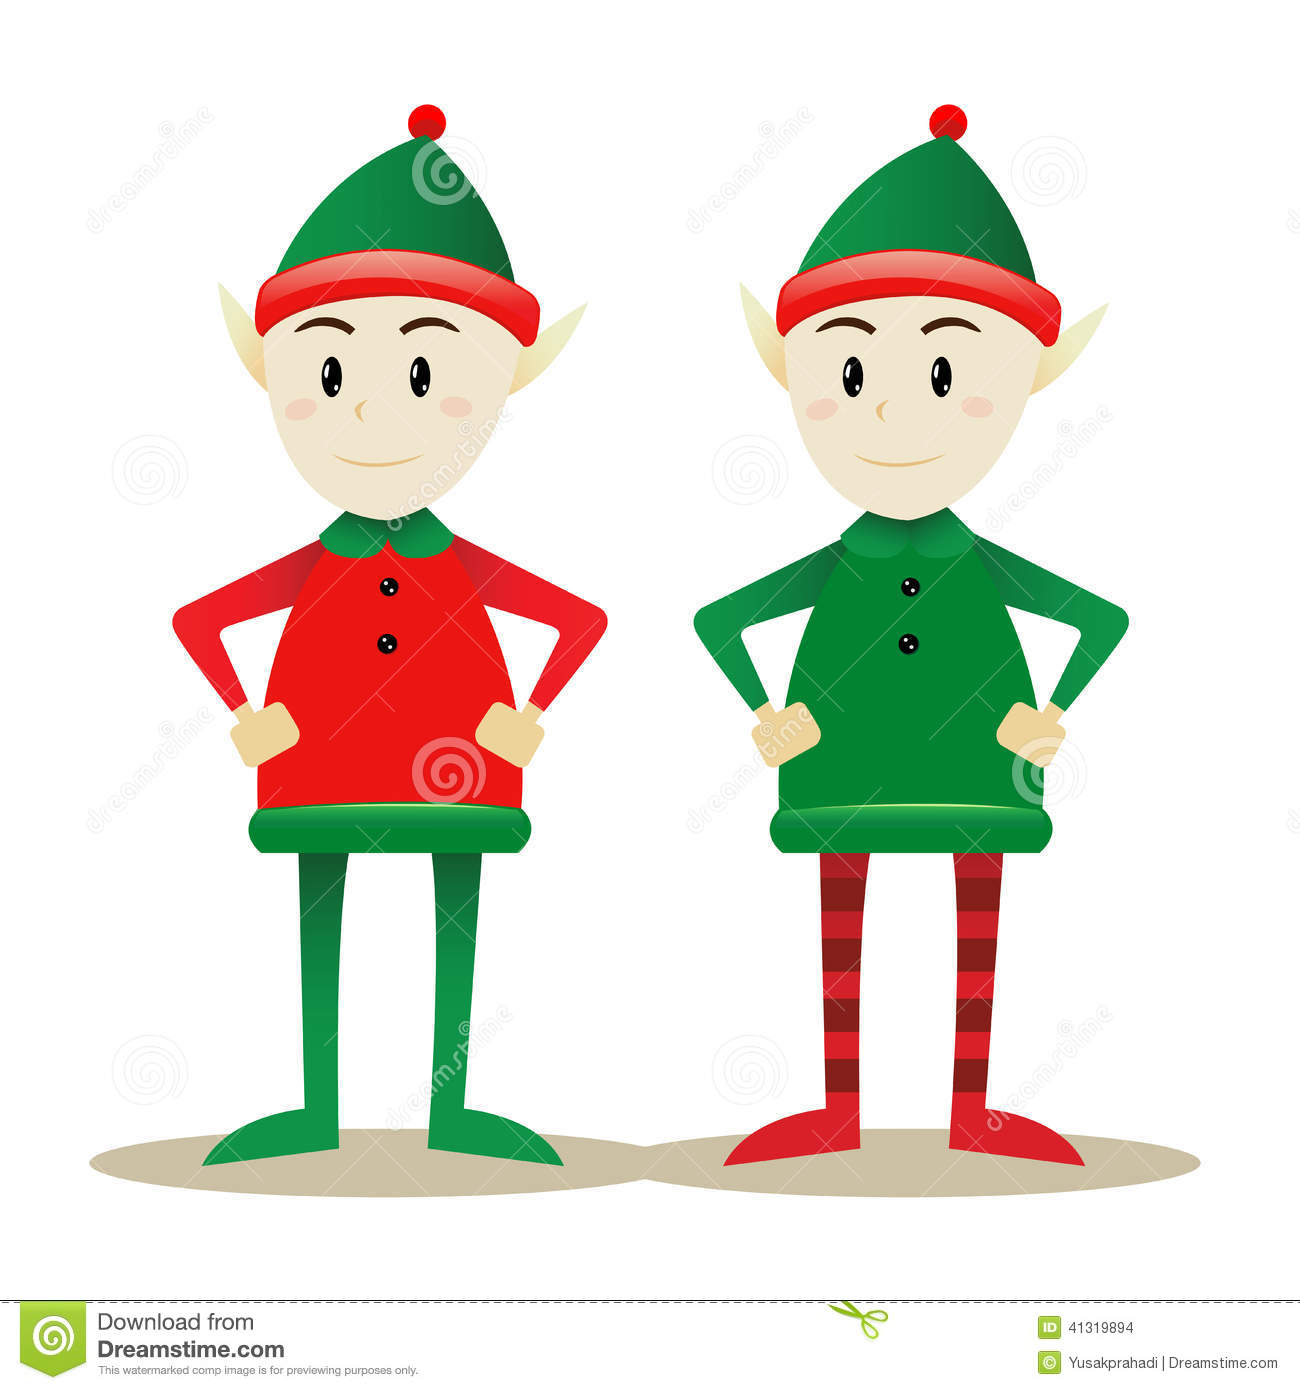 12 Vector Santa's Elf Images